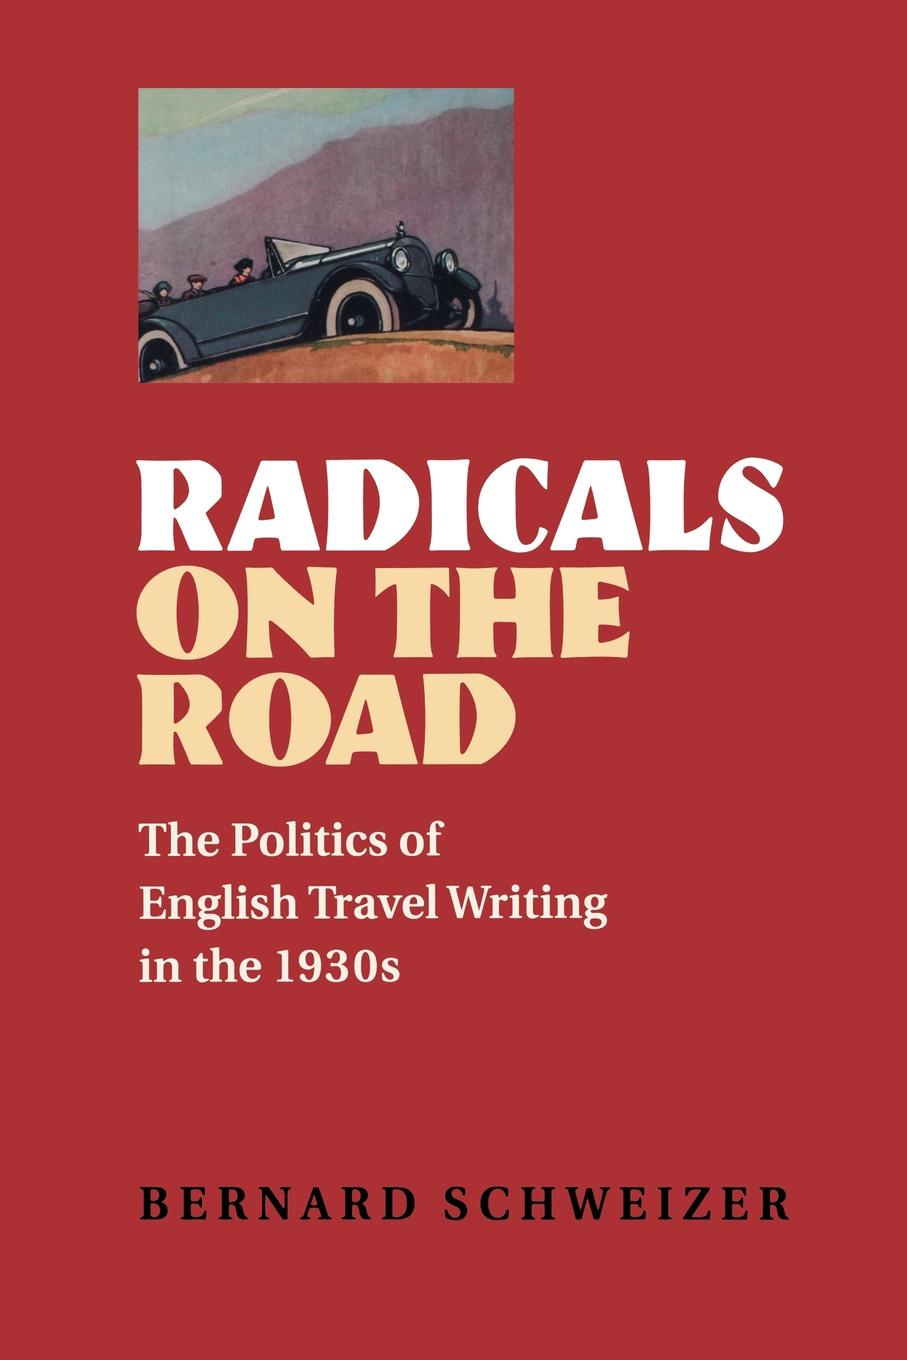 Bernard Schweizer Radicals on the Road. The Politics of English Travel Writing in the 1930s radicals